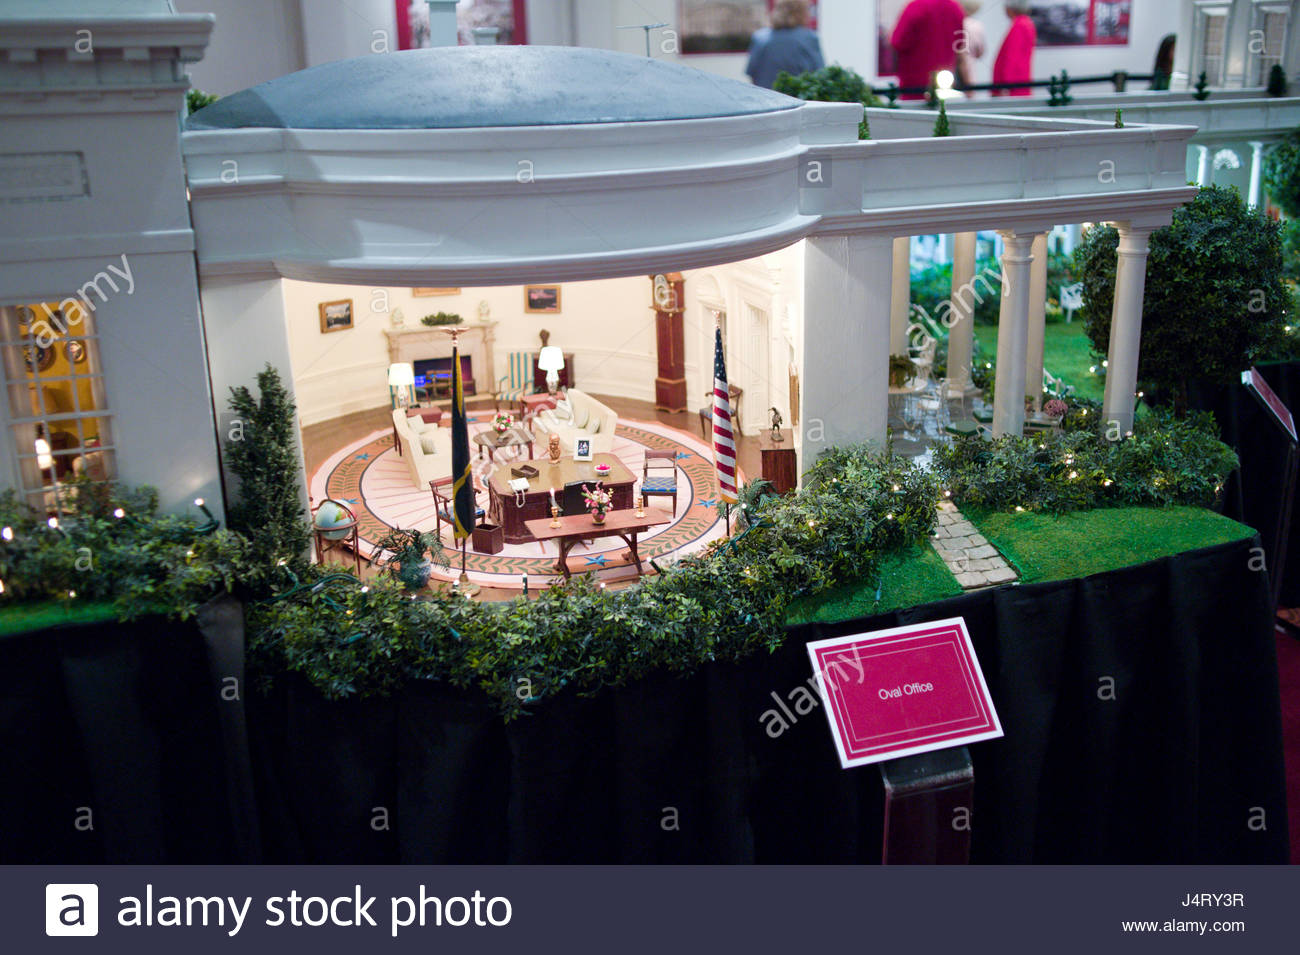 Scale Model Of The Oval Office In The White House On Display ...